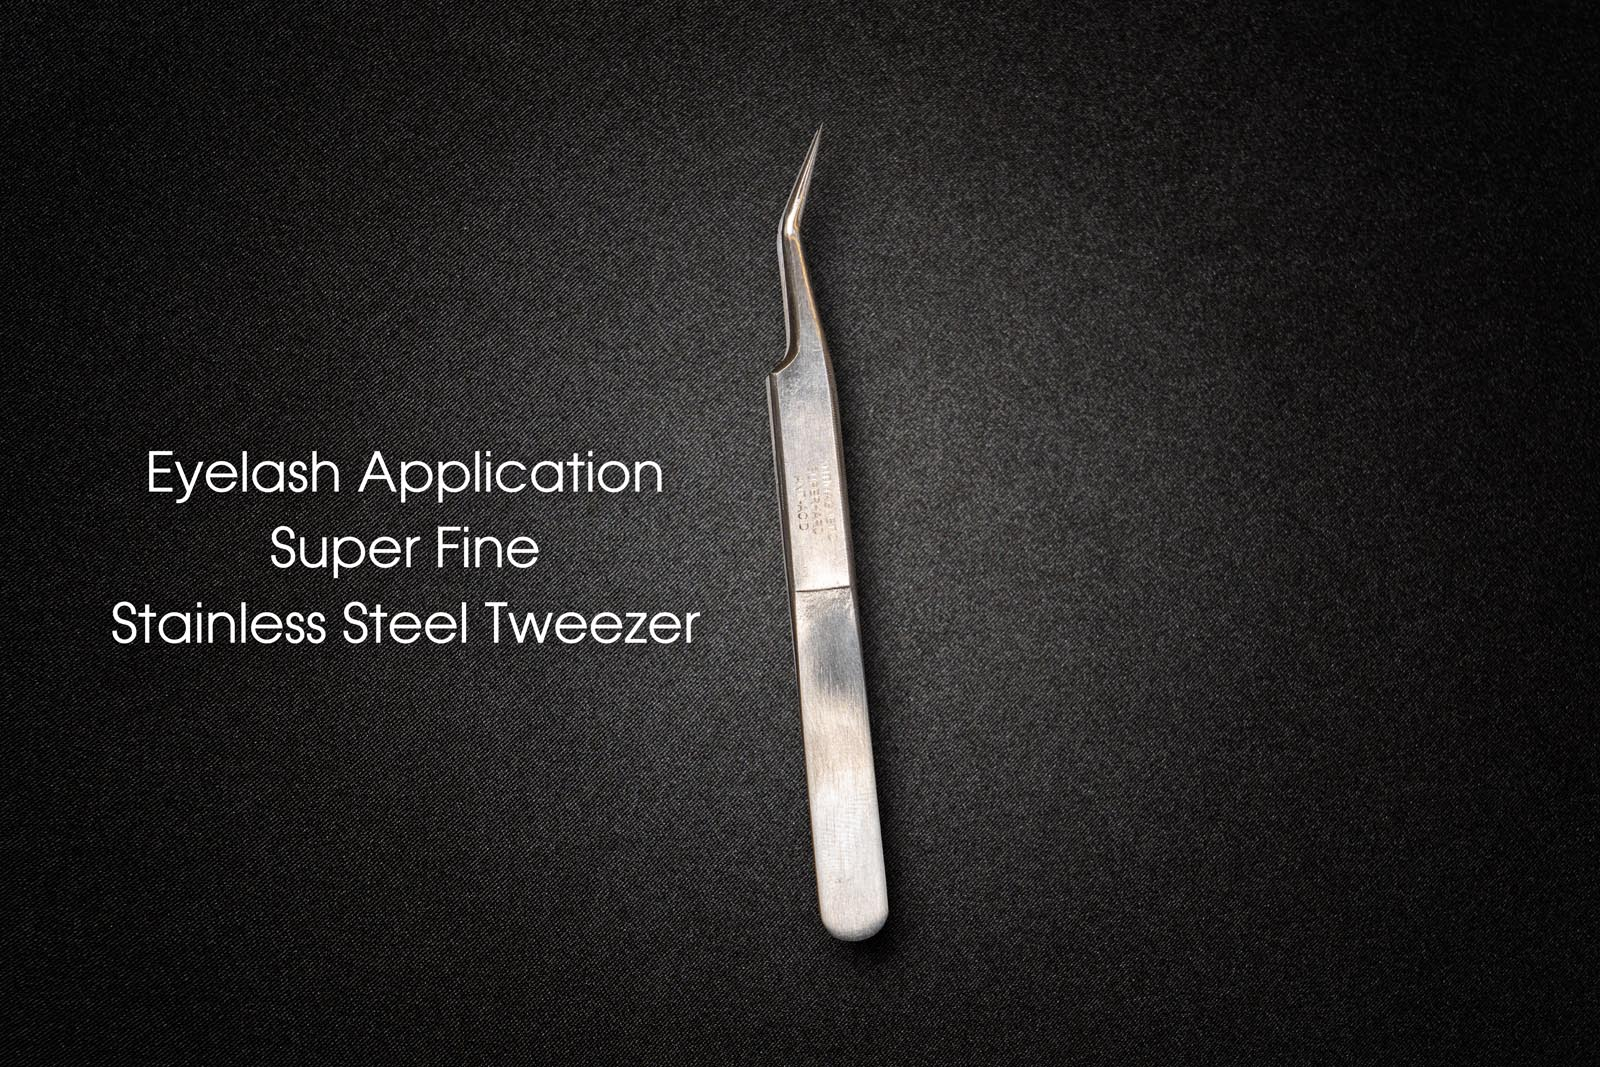 11 Eyelash Application Super Fine Stainless Tweezer.jpg